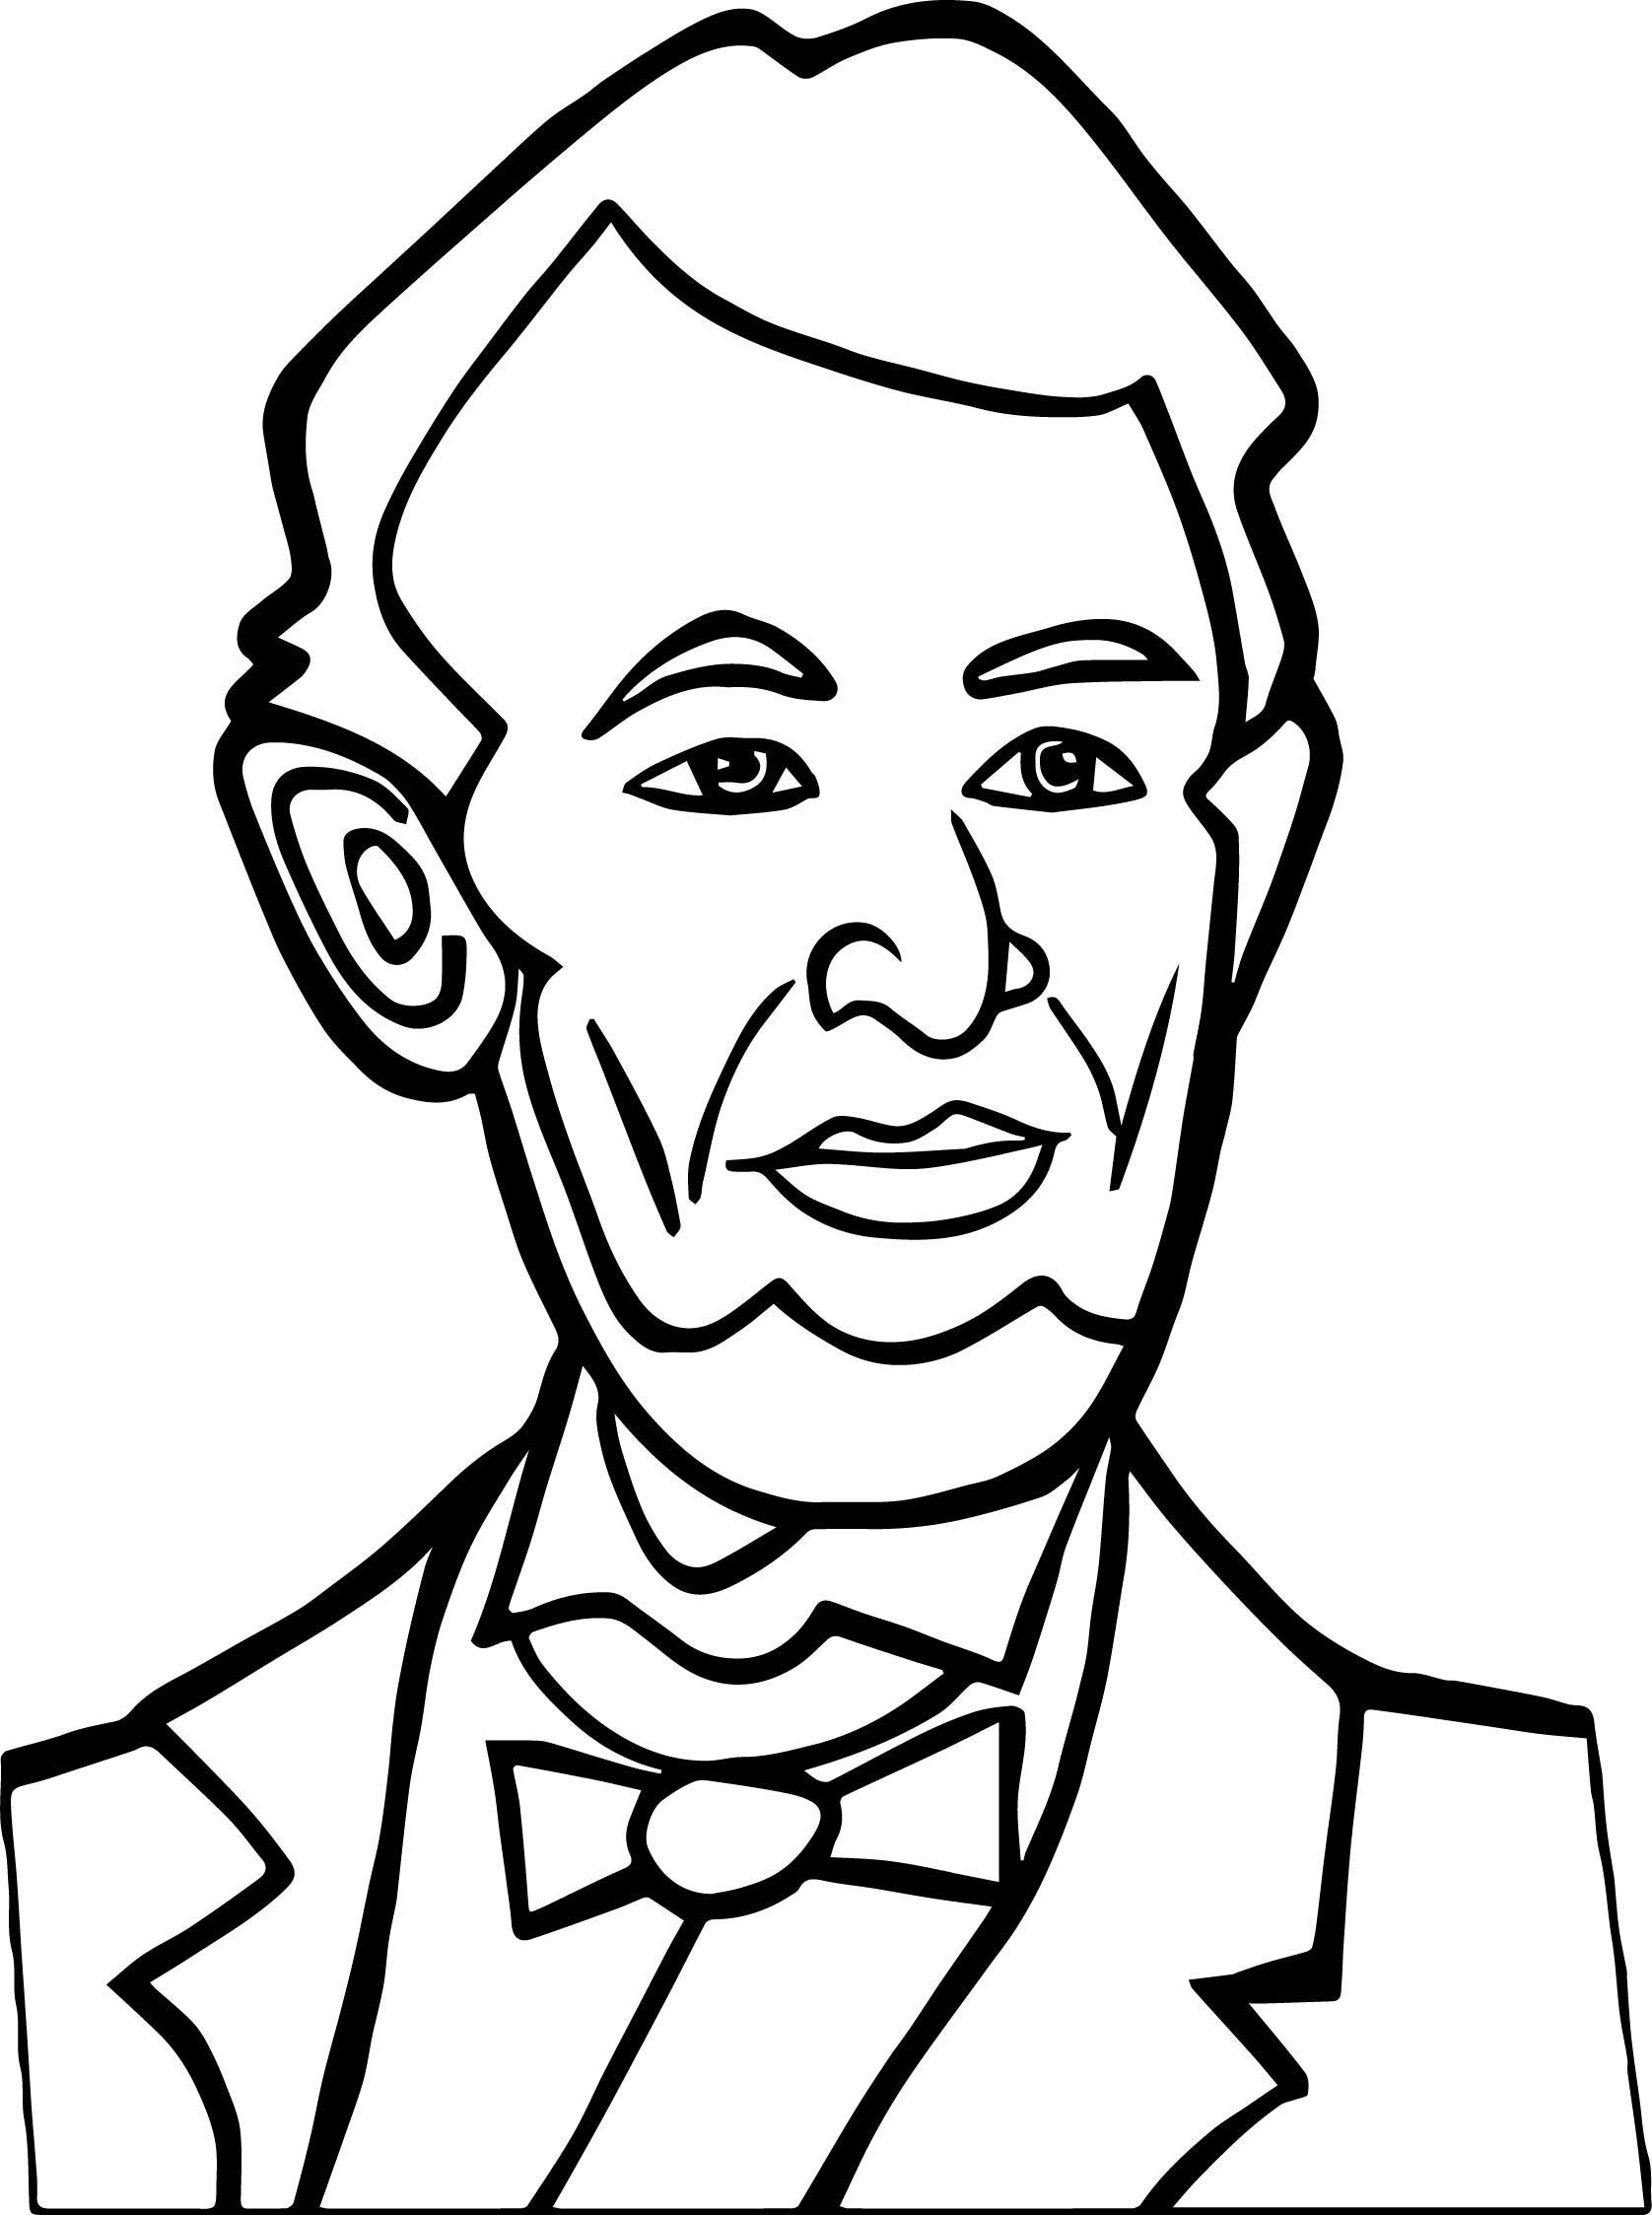 abraham lincoln coloring page abraham lincoln coloring page purple kitty page lincoln abraham coloring